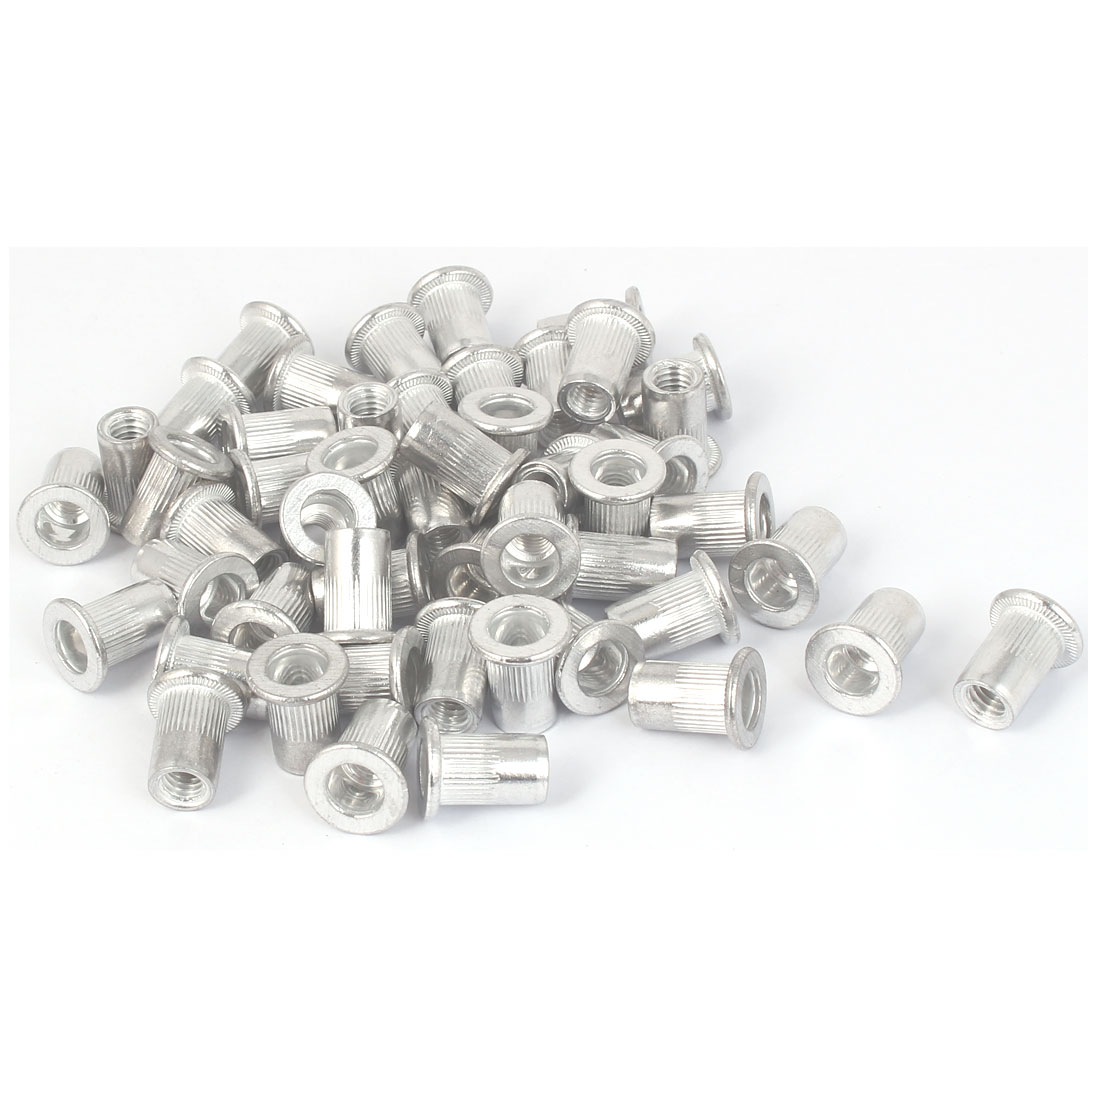 M6x15mm Aluminum Straight Knurled Rivet Nut Fastener 50pcs